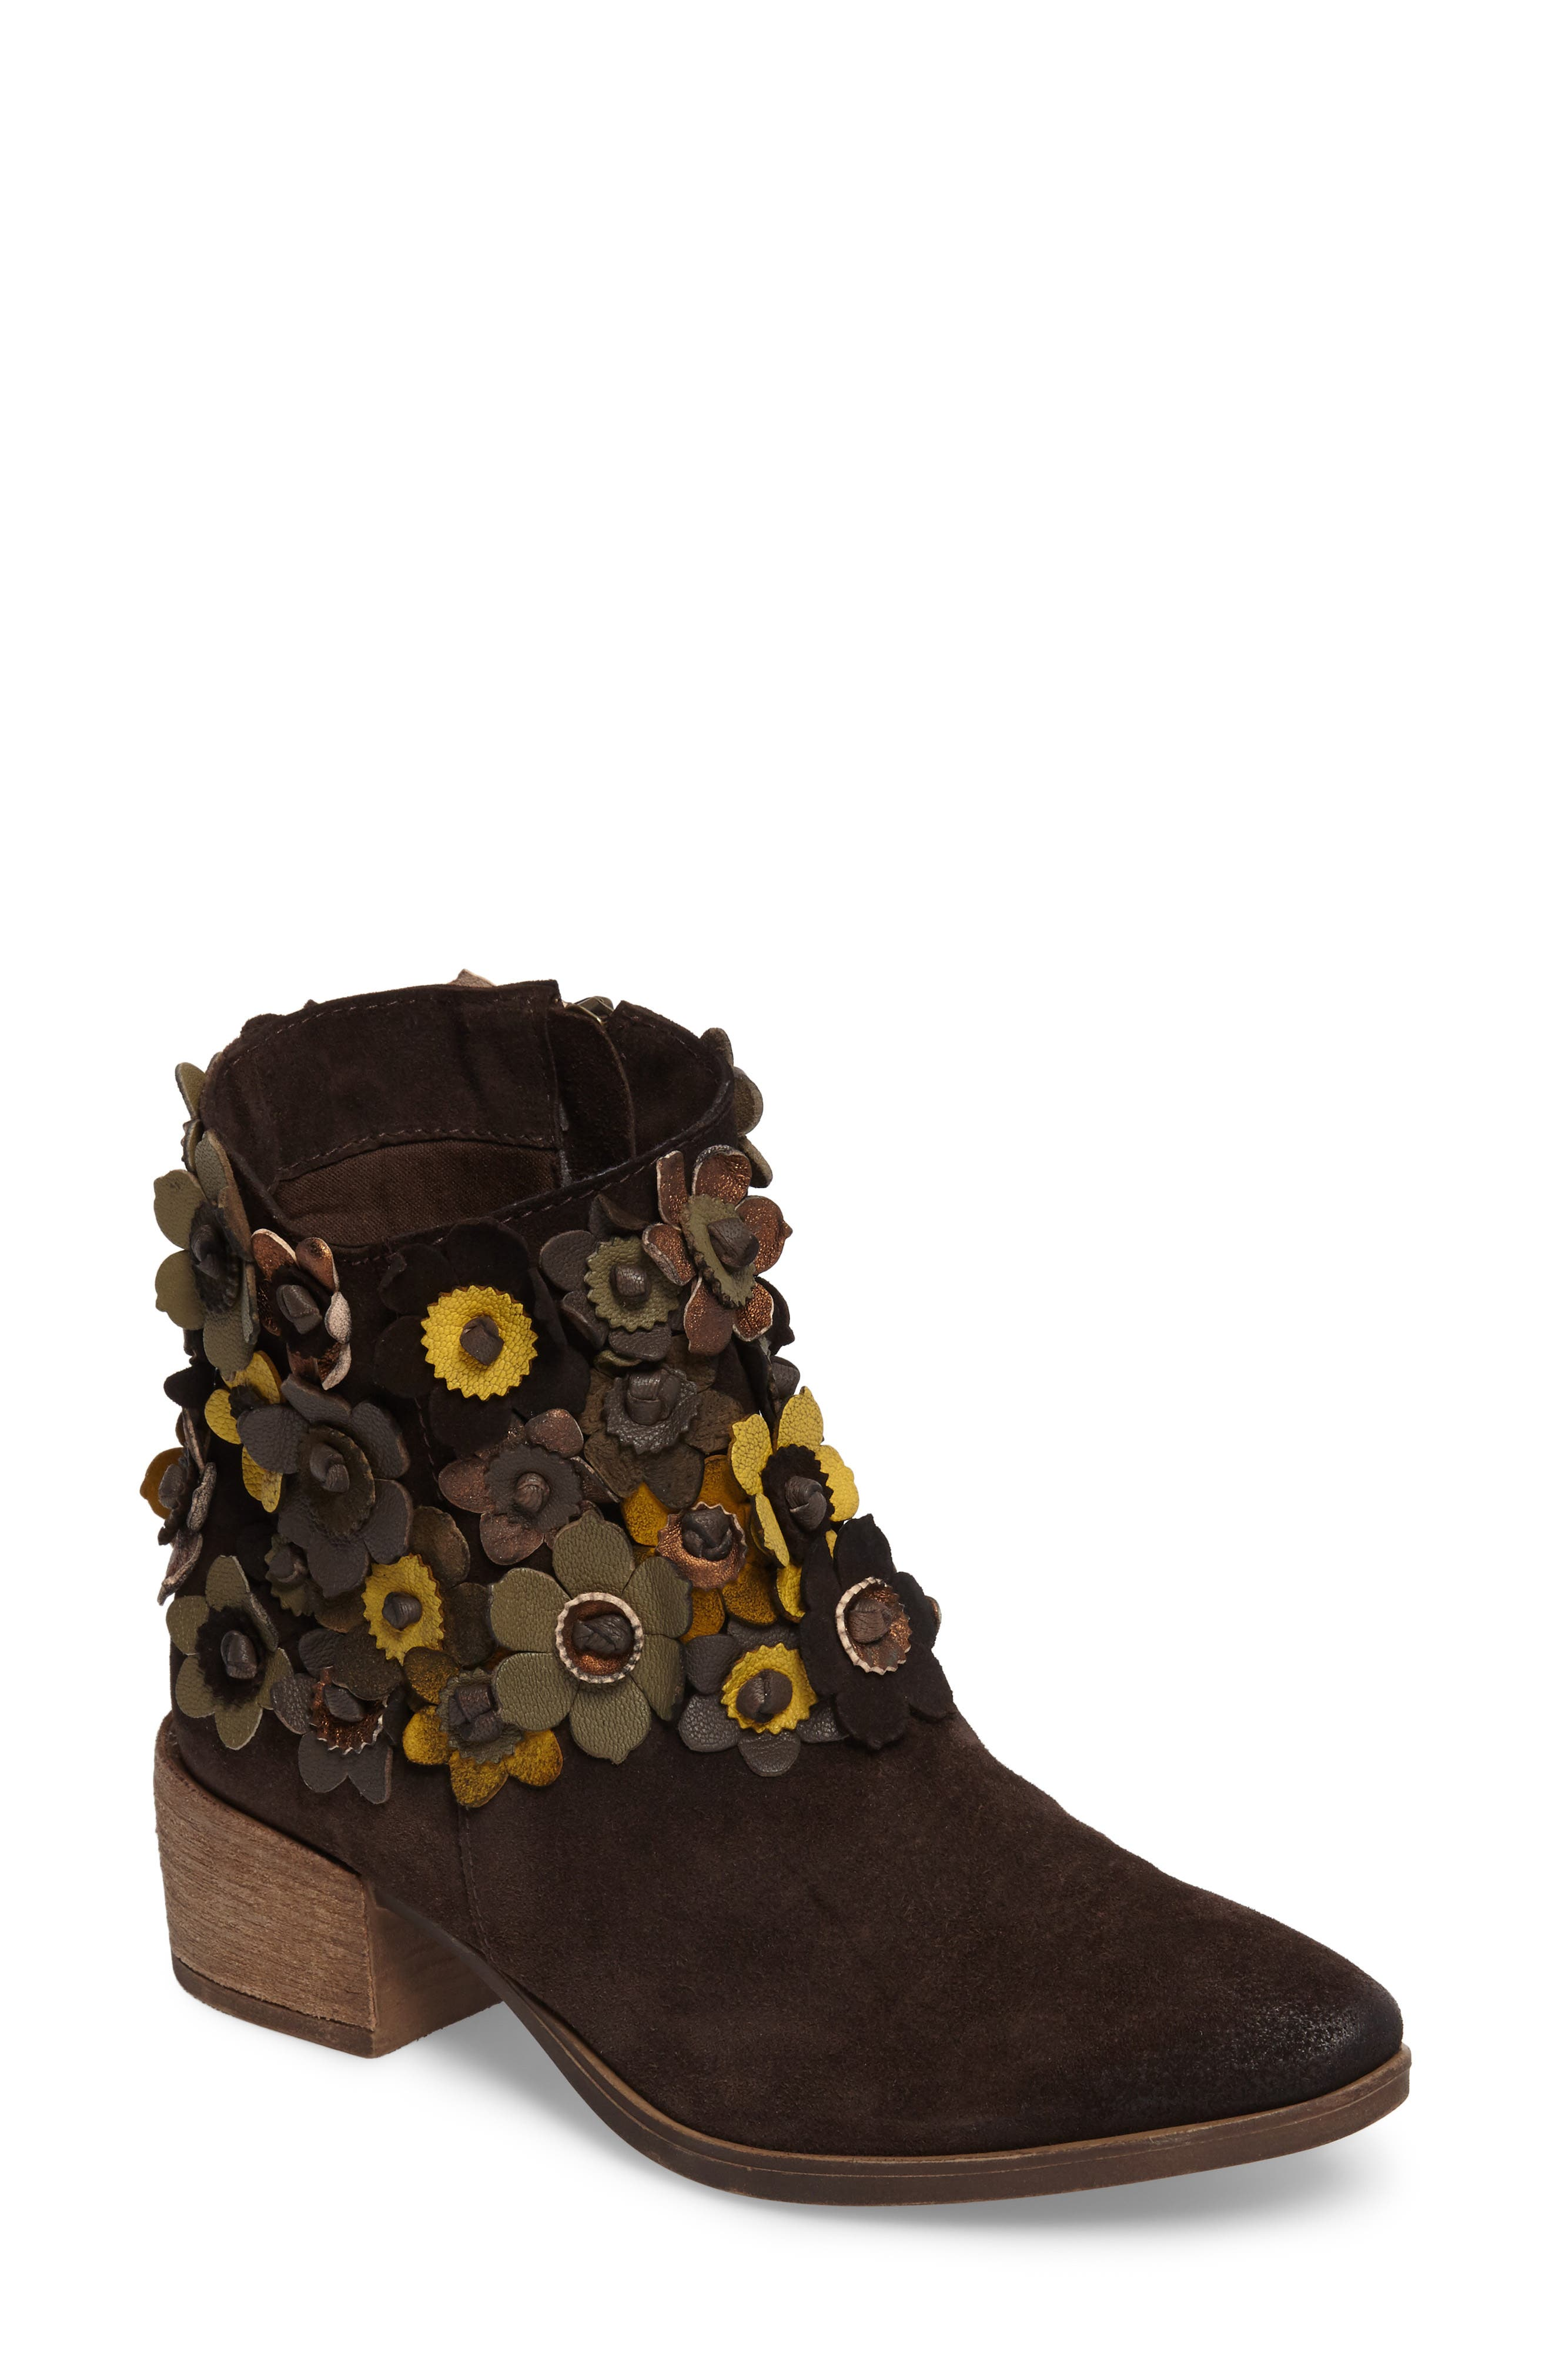 Sheridan Mia Sunflower Embellished Bootie, Brown